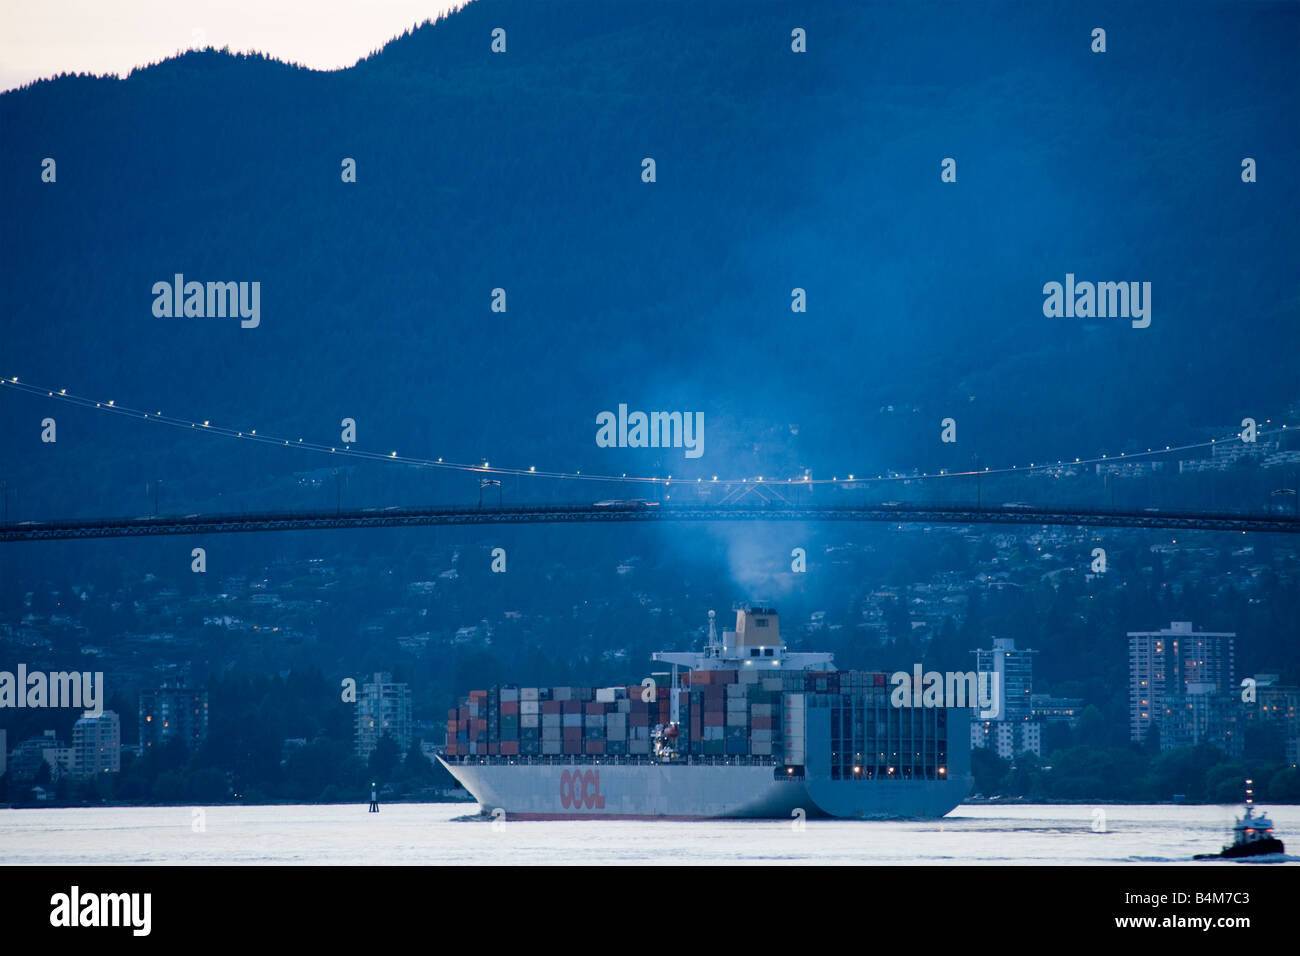 OOCL Netherlands container ship passing under Lion's Gate bridge, Vancouver,  British Columbia, Canada - Stock Image